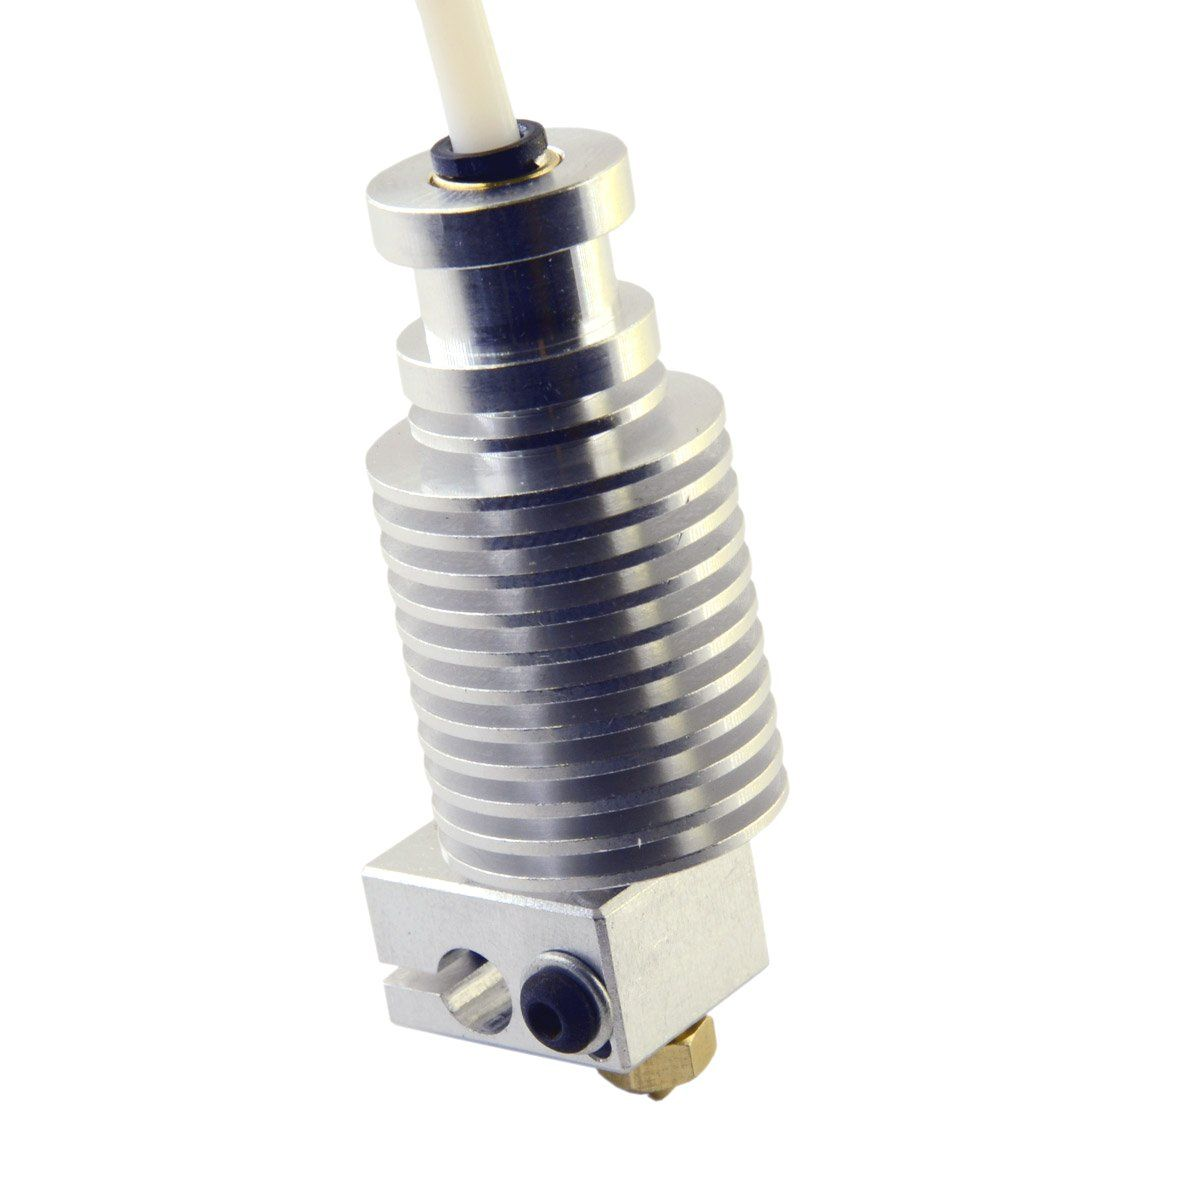 RepRap Champion Metal Only Parts for J-head V6 Hotend 1.75 / 0.4mm 3D Printer Direct or Bowden